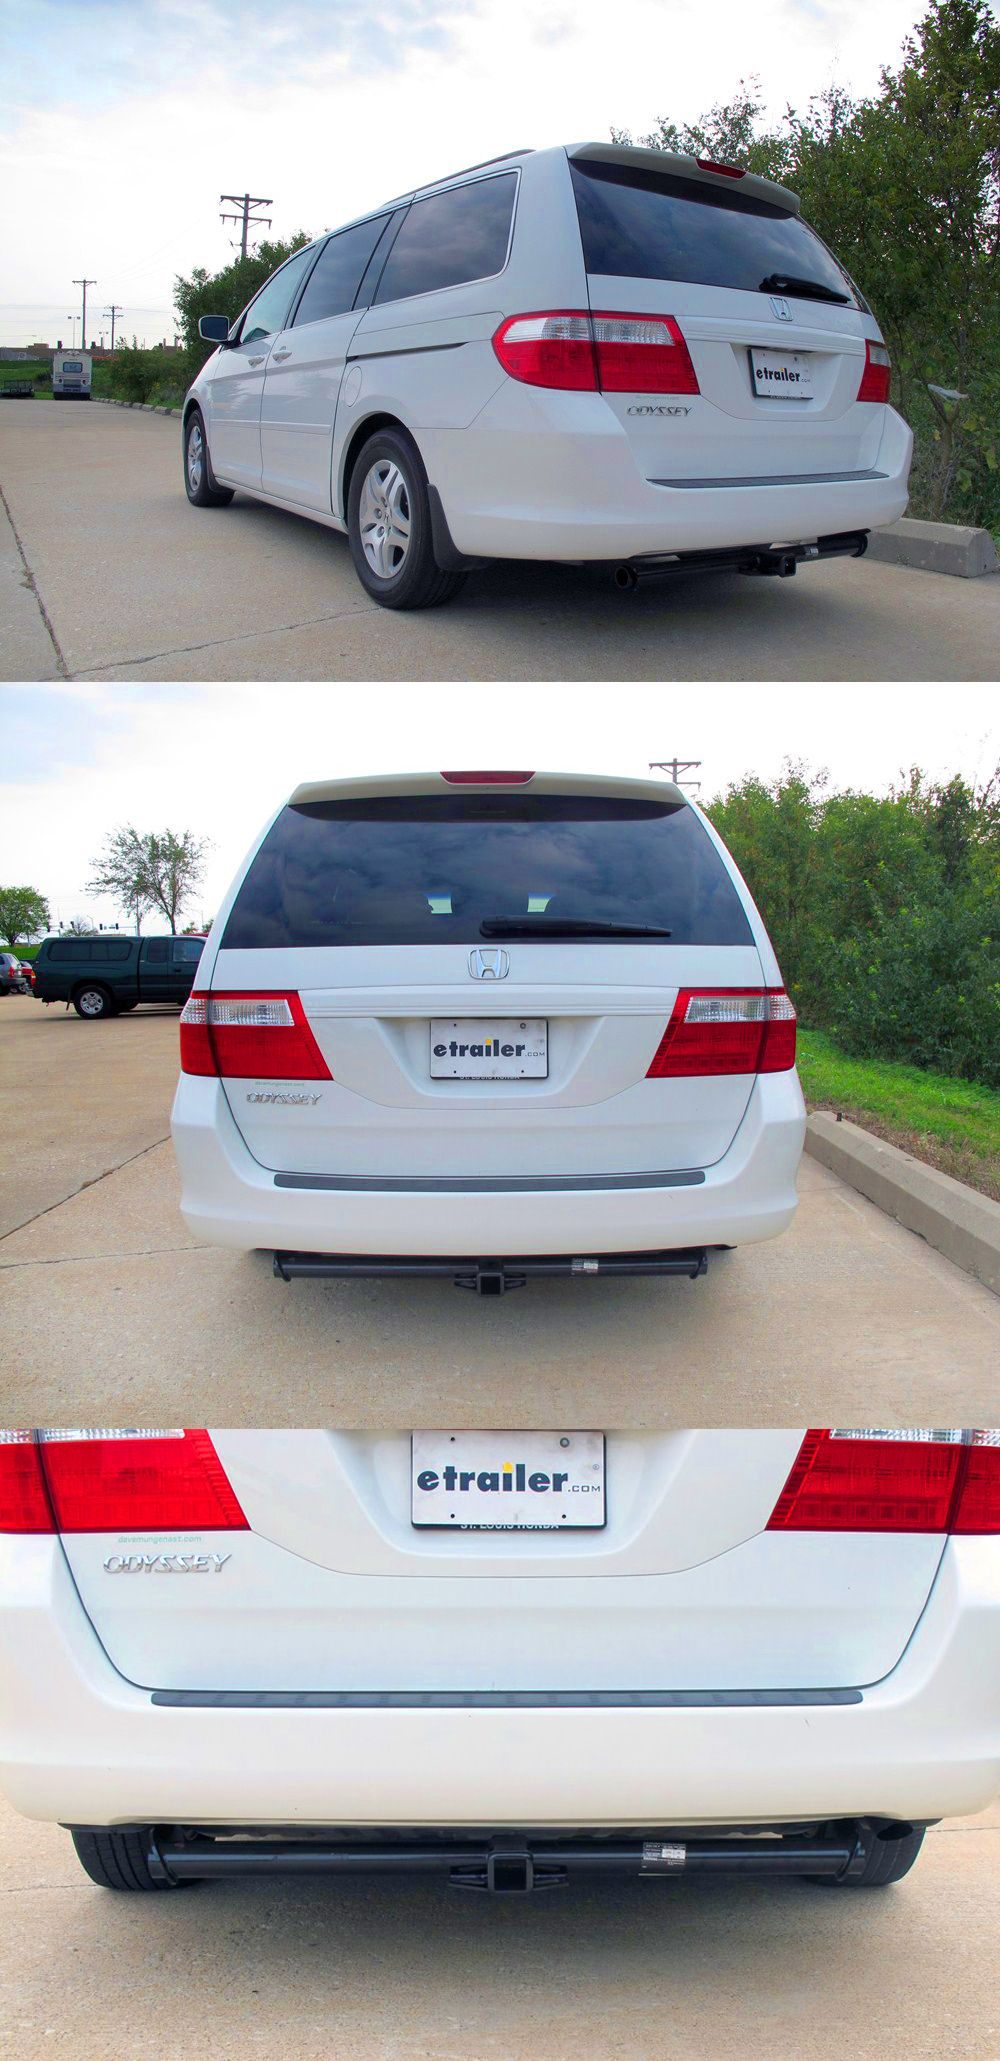 Accessories For The Honda Odyssey Includes The Draw Tite Trailer Hitch!  Fully Welded Trailer Hitch Is Strong And Durable And Works Great For Bike  Racks, ...